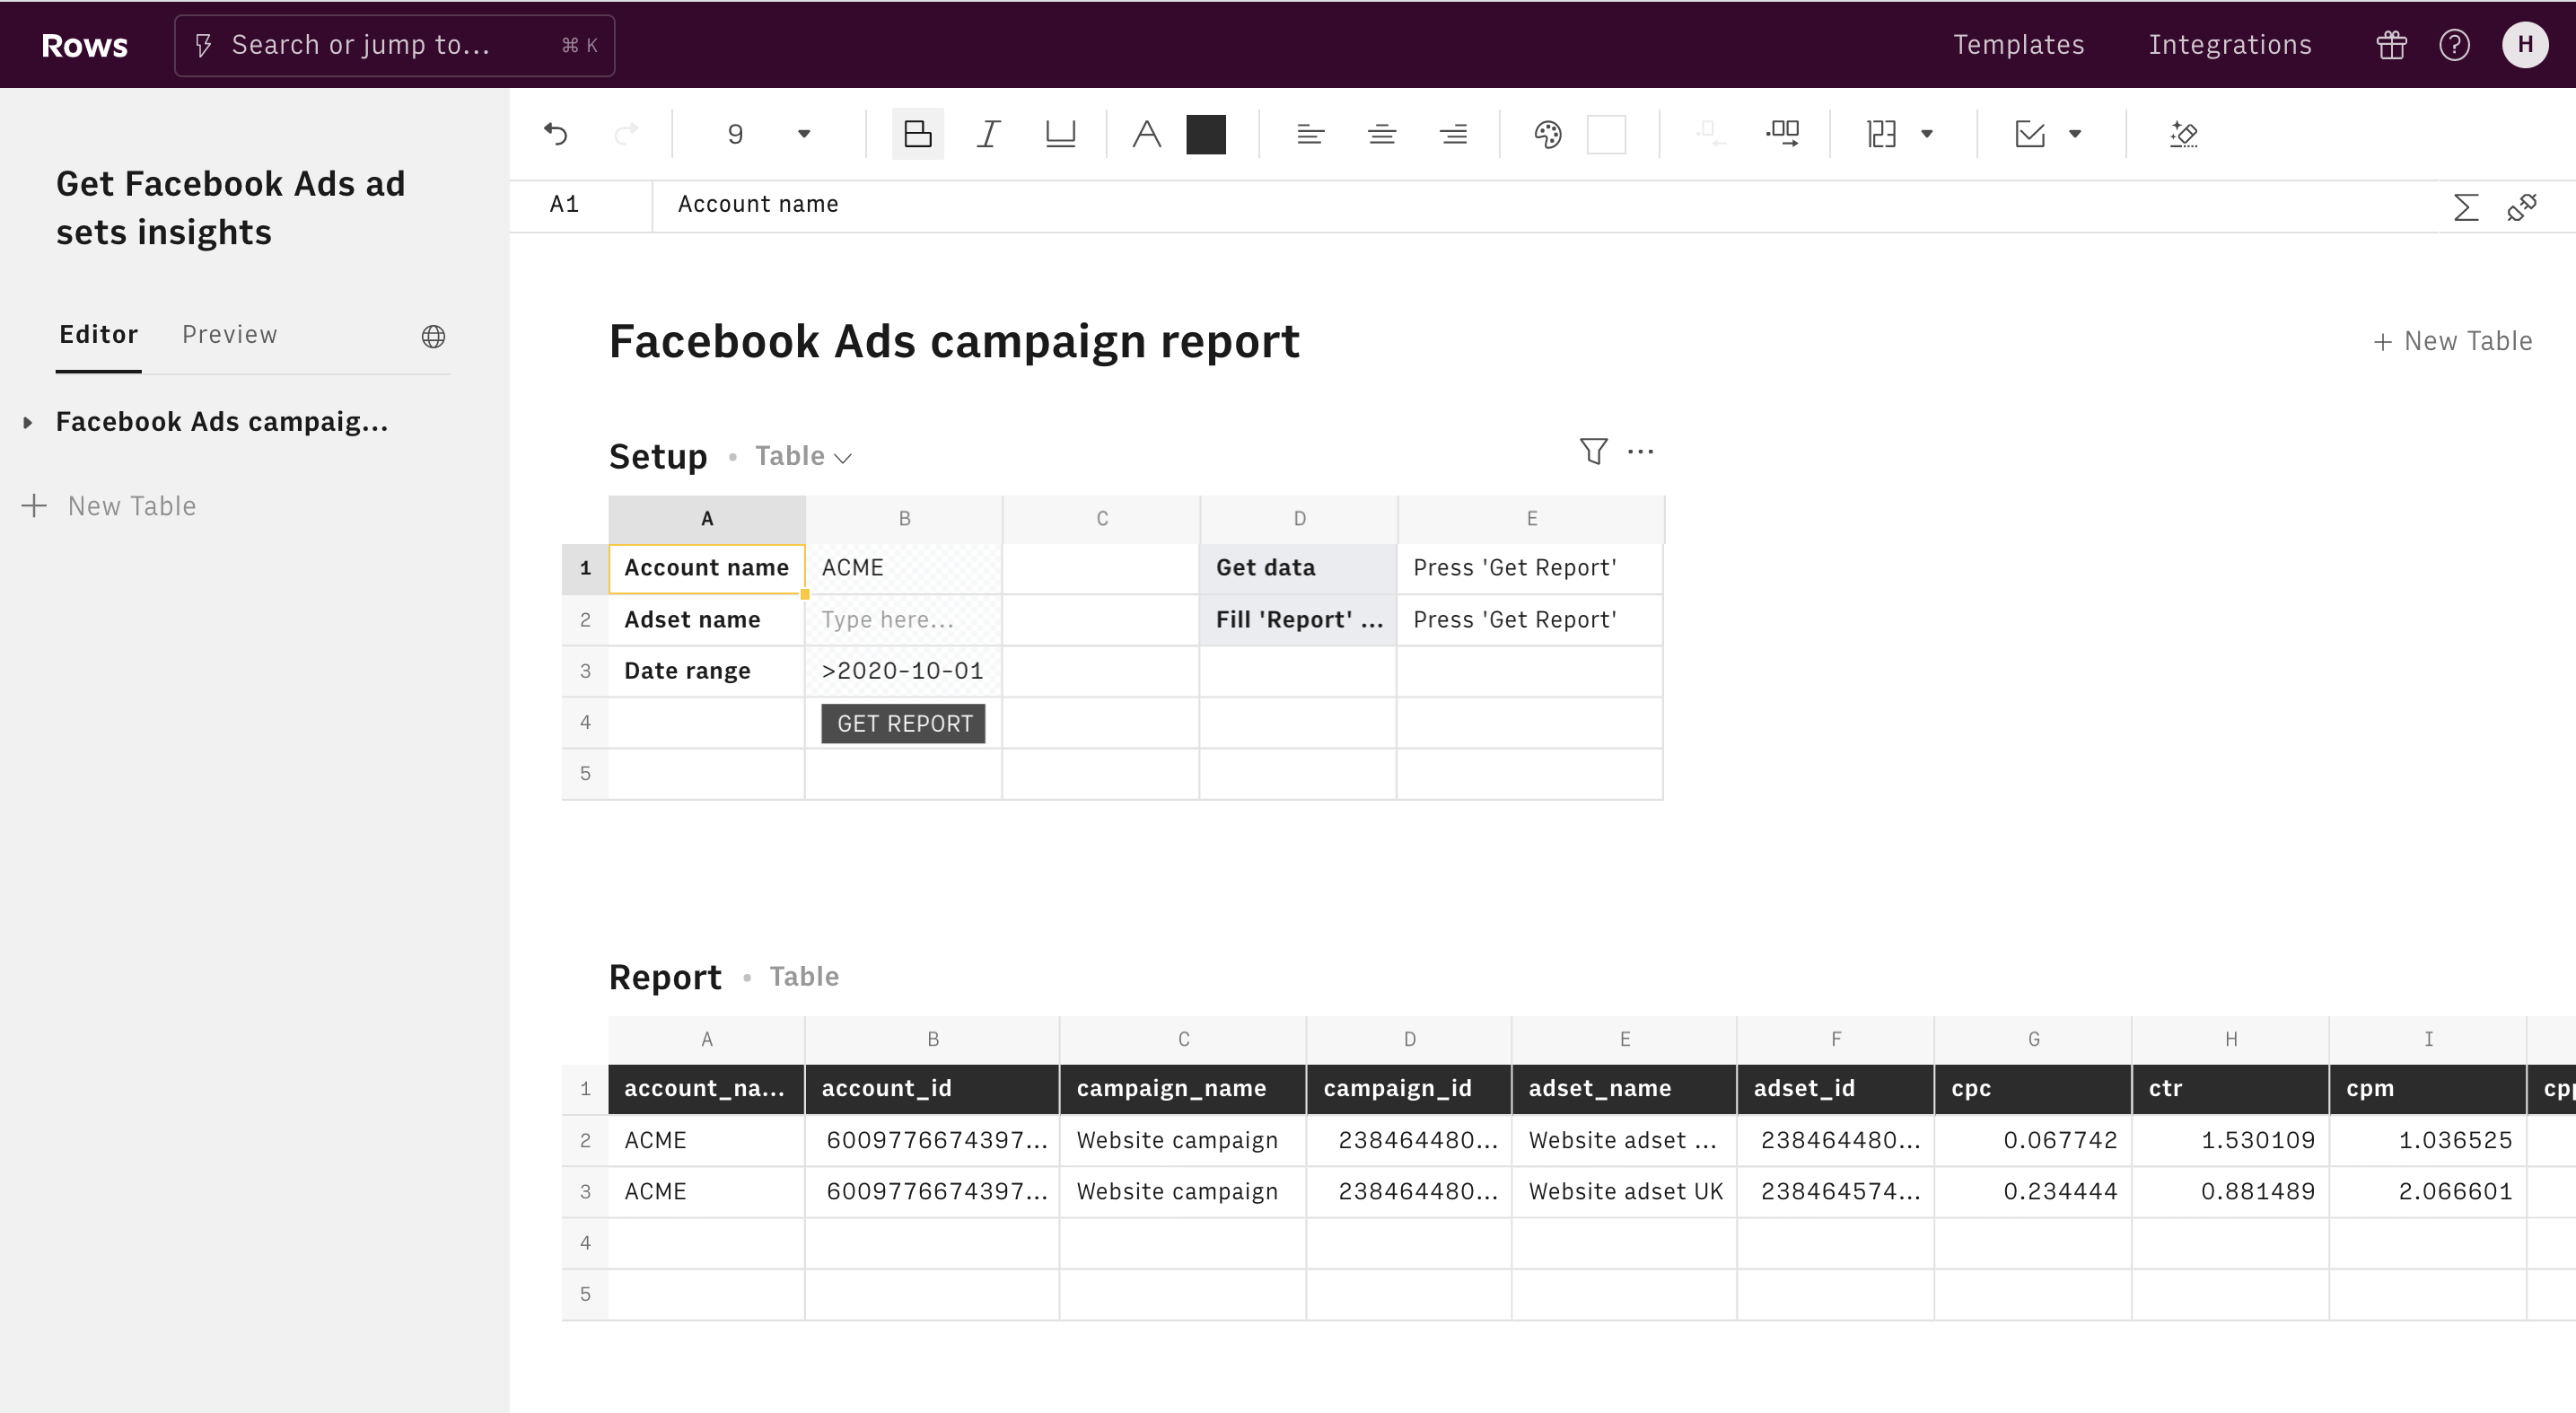 Get Facebook Ads ad sets insights editor 1